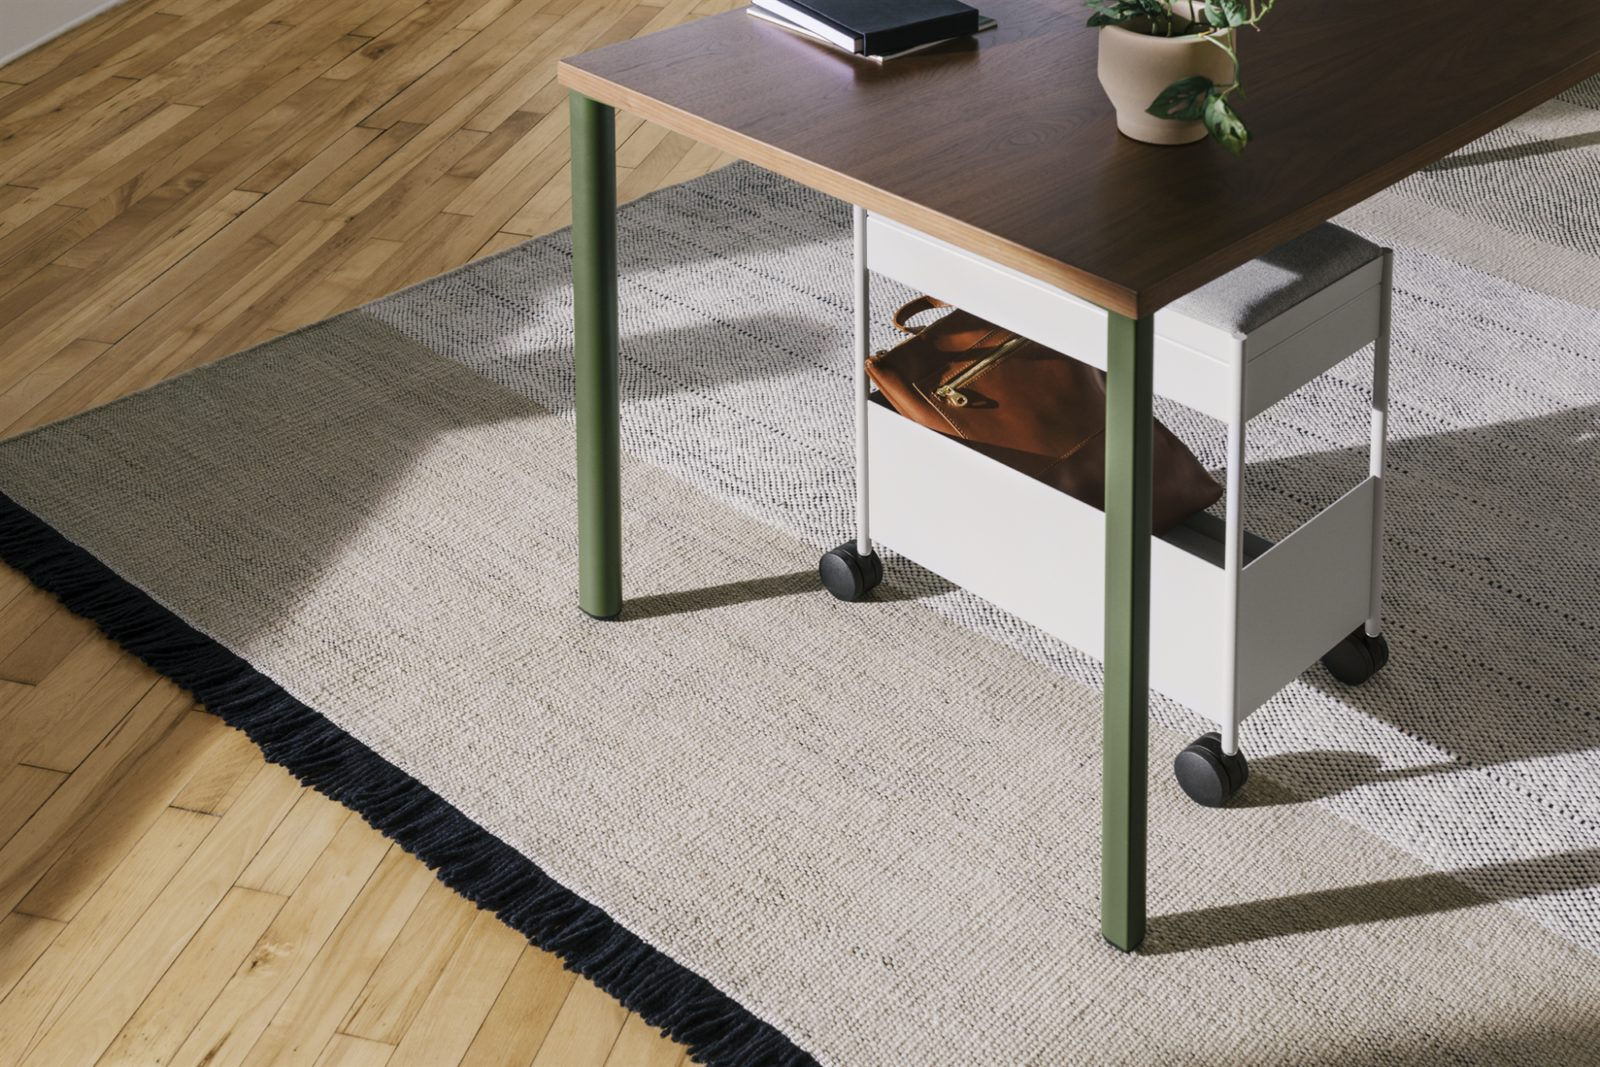 A white mobile individual OE1 Storage Trolley with a grey fabric cushion top and a large bottom shelf holding a purse positioned beneath a table.